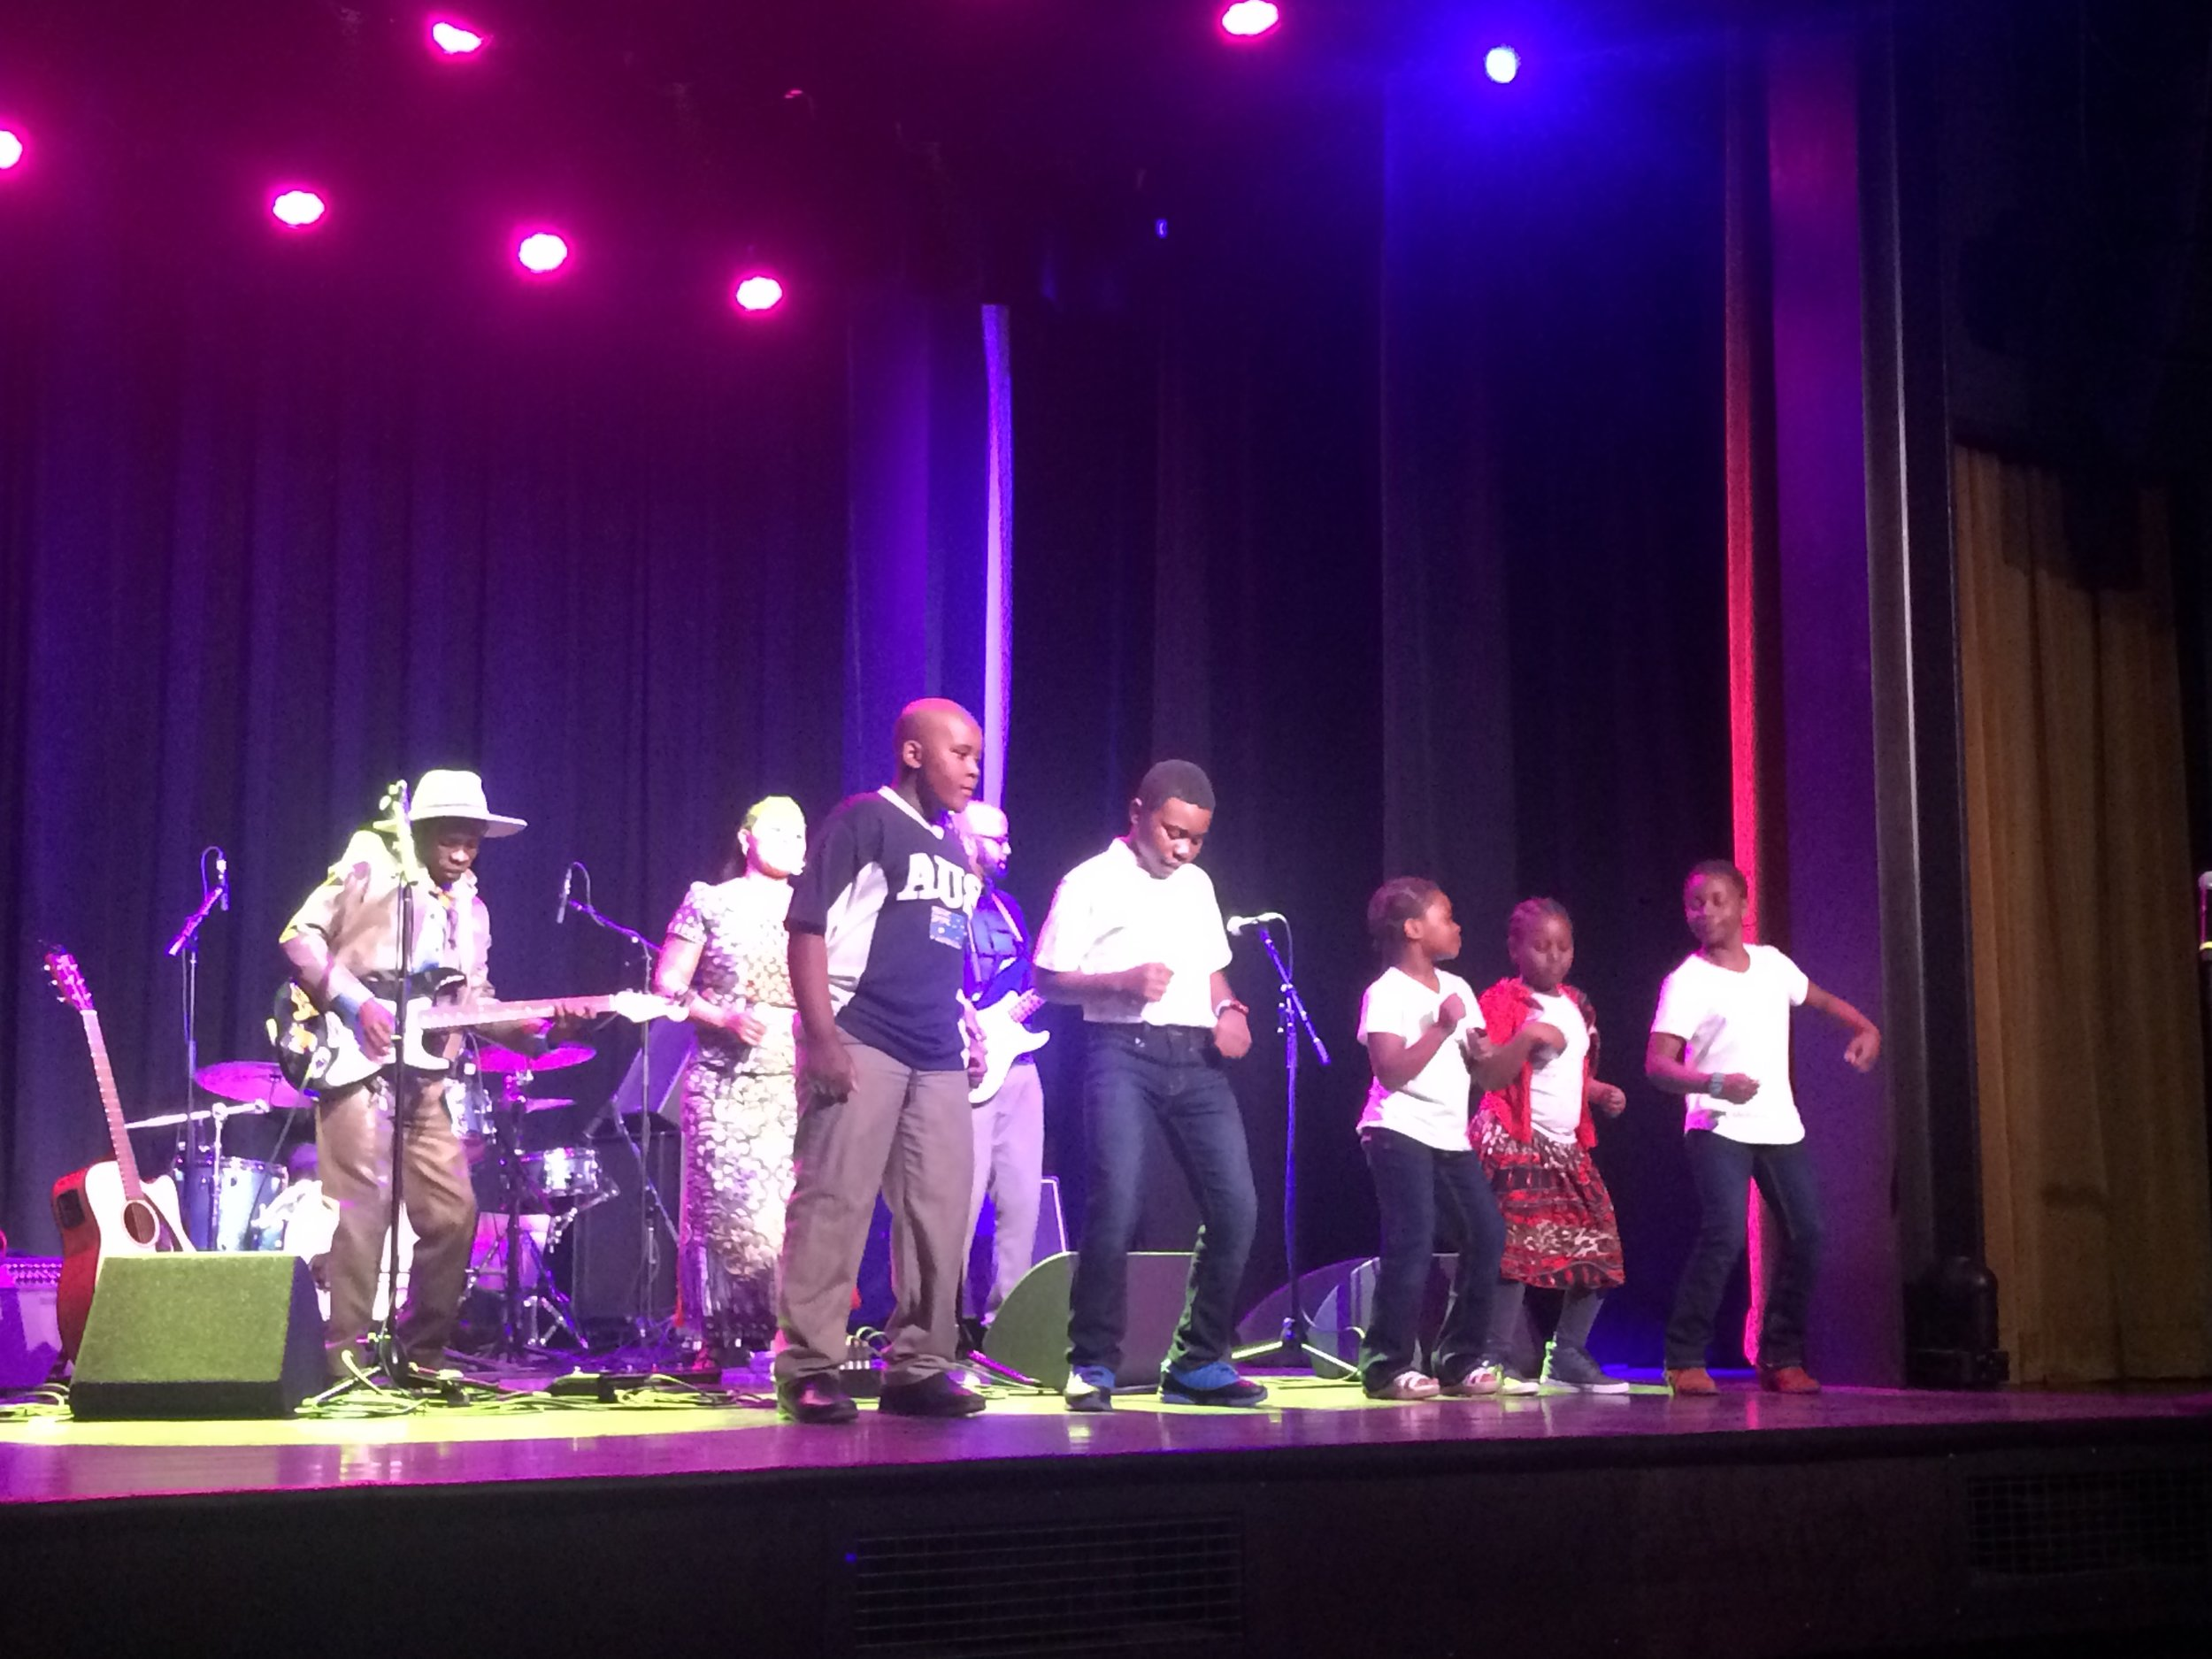 Refugees from the Democratic Republic of Congo, now living in Missoula, performing at the Rialto Theater, Bozeman - February 2018